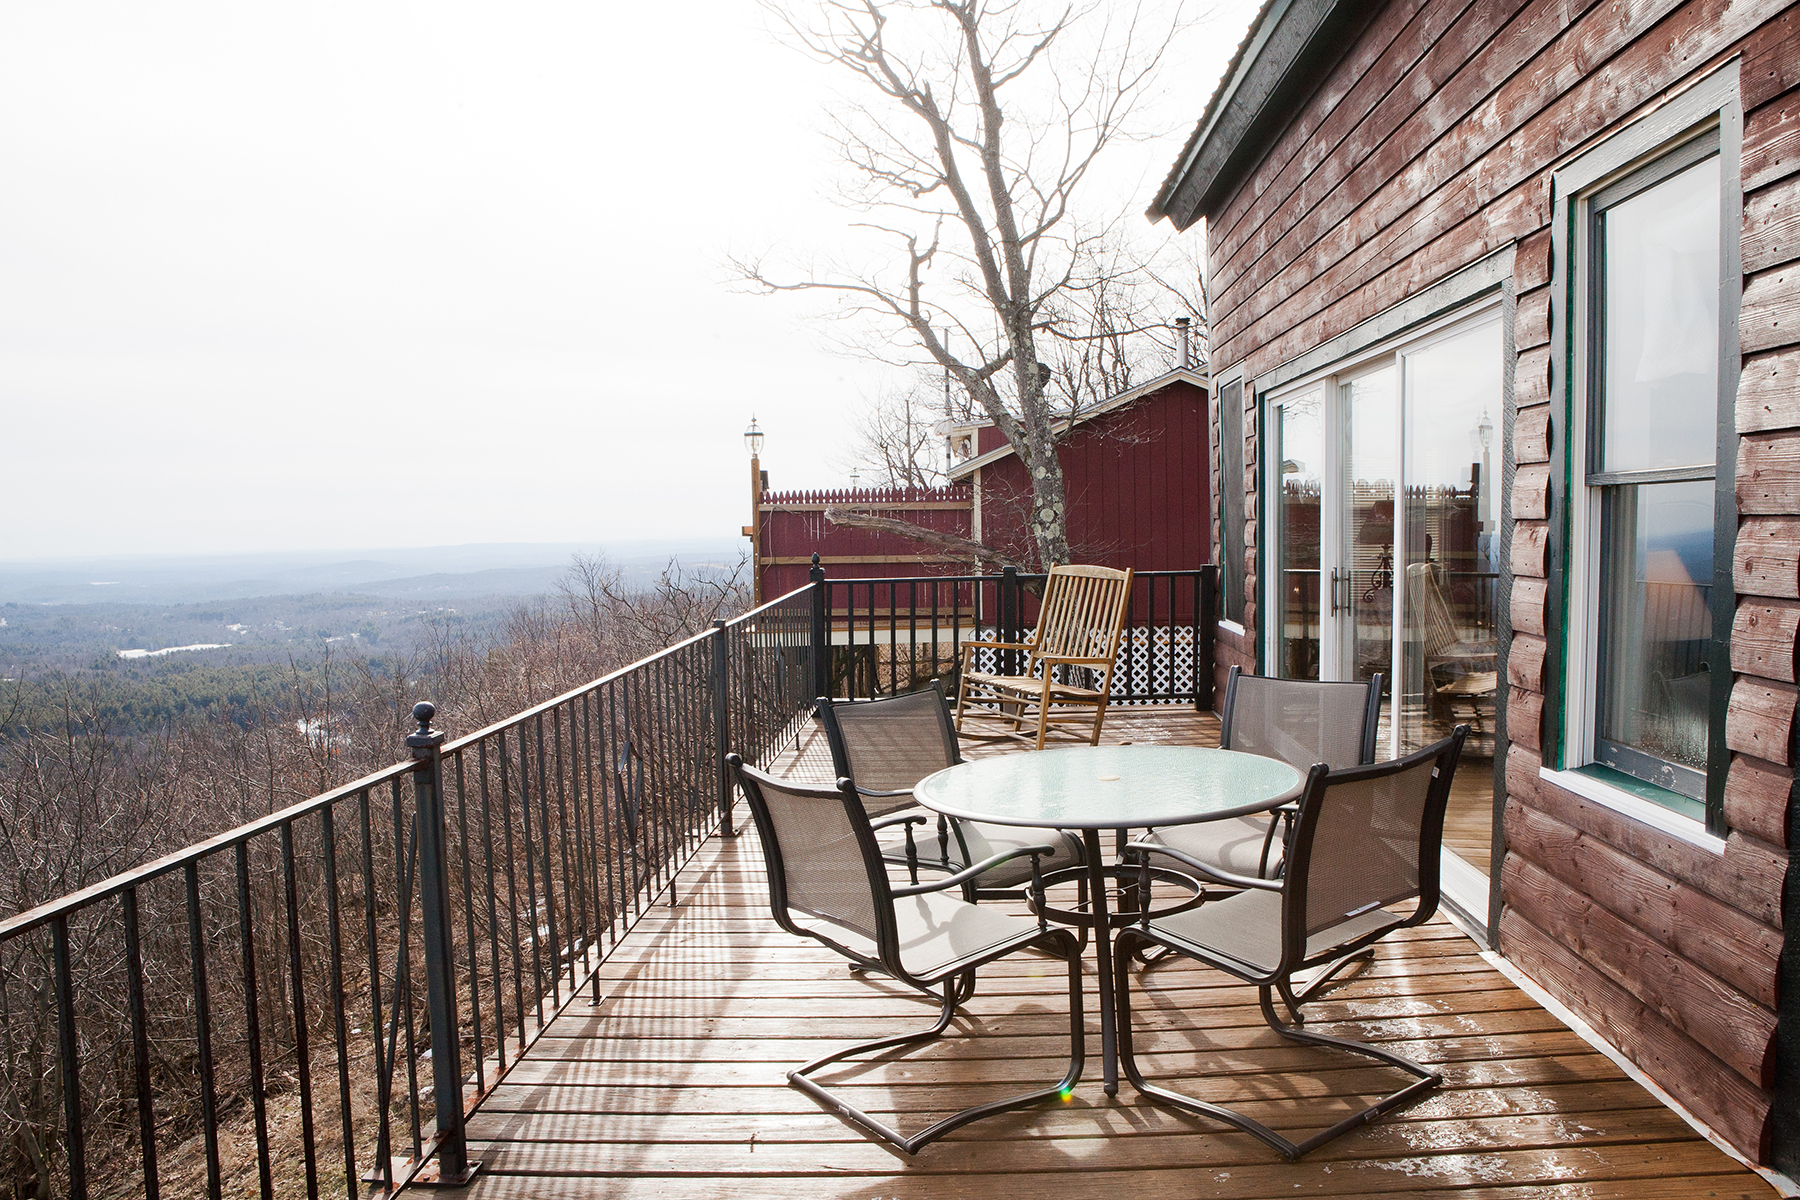 New Hampshire Airbnb listing